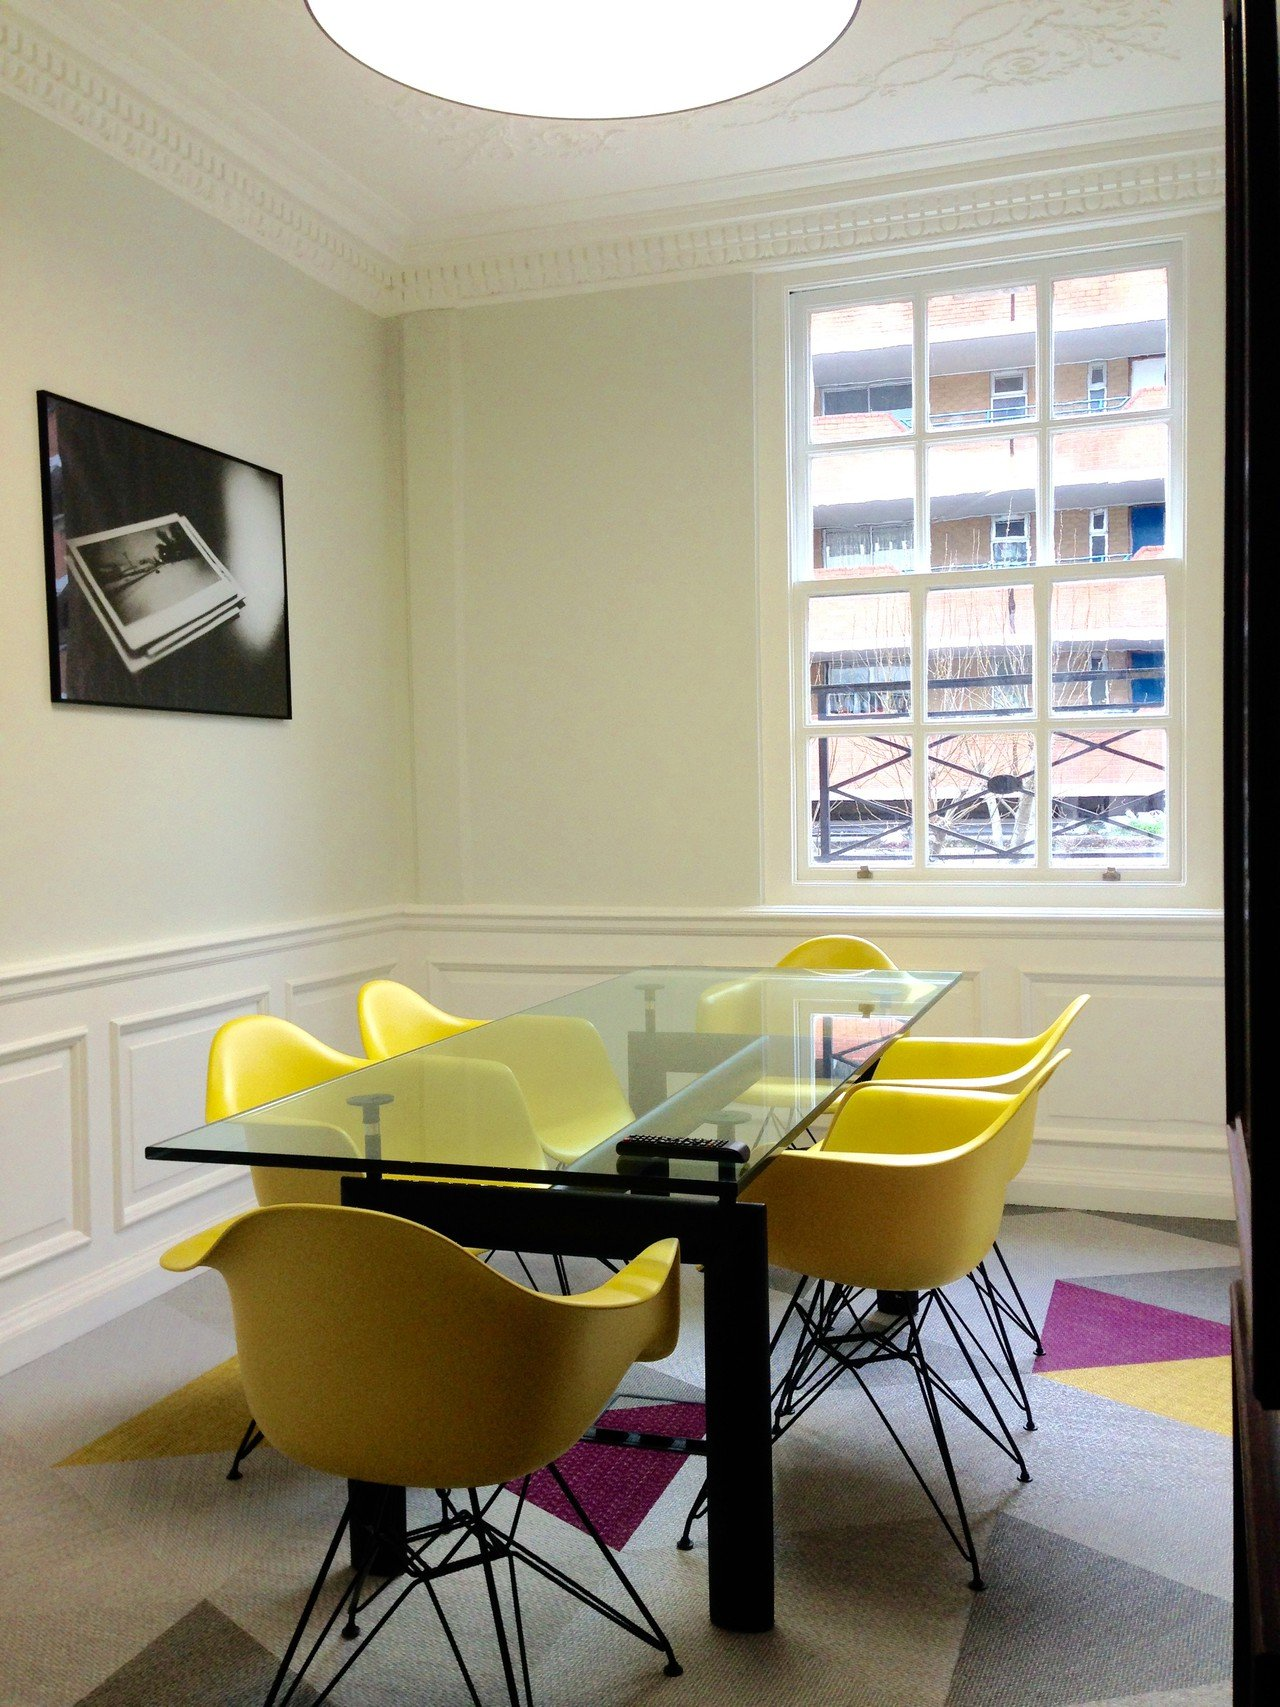 London conference rooms Meetingraum Headspace - King's Landing image 1